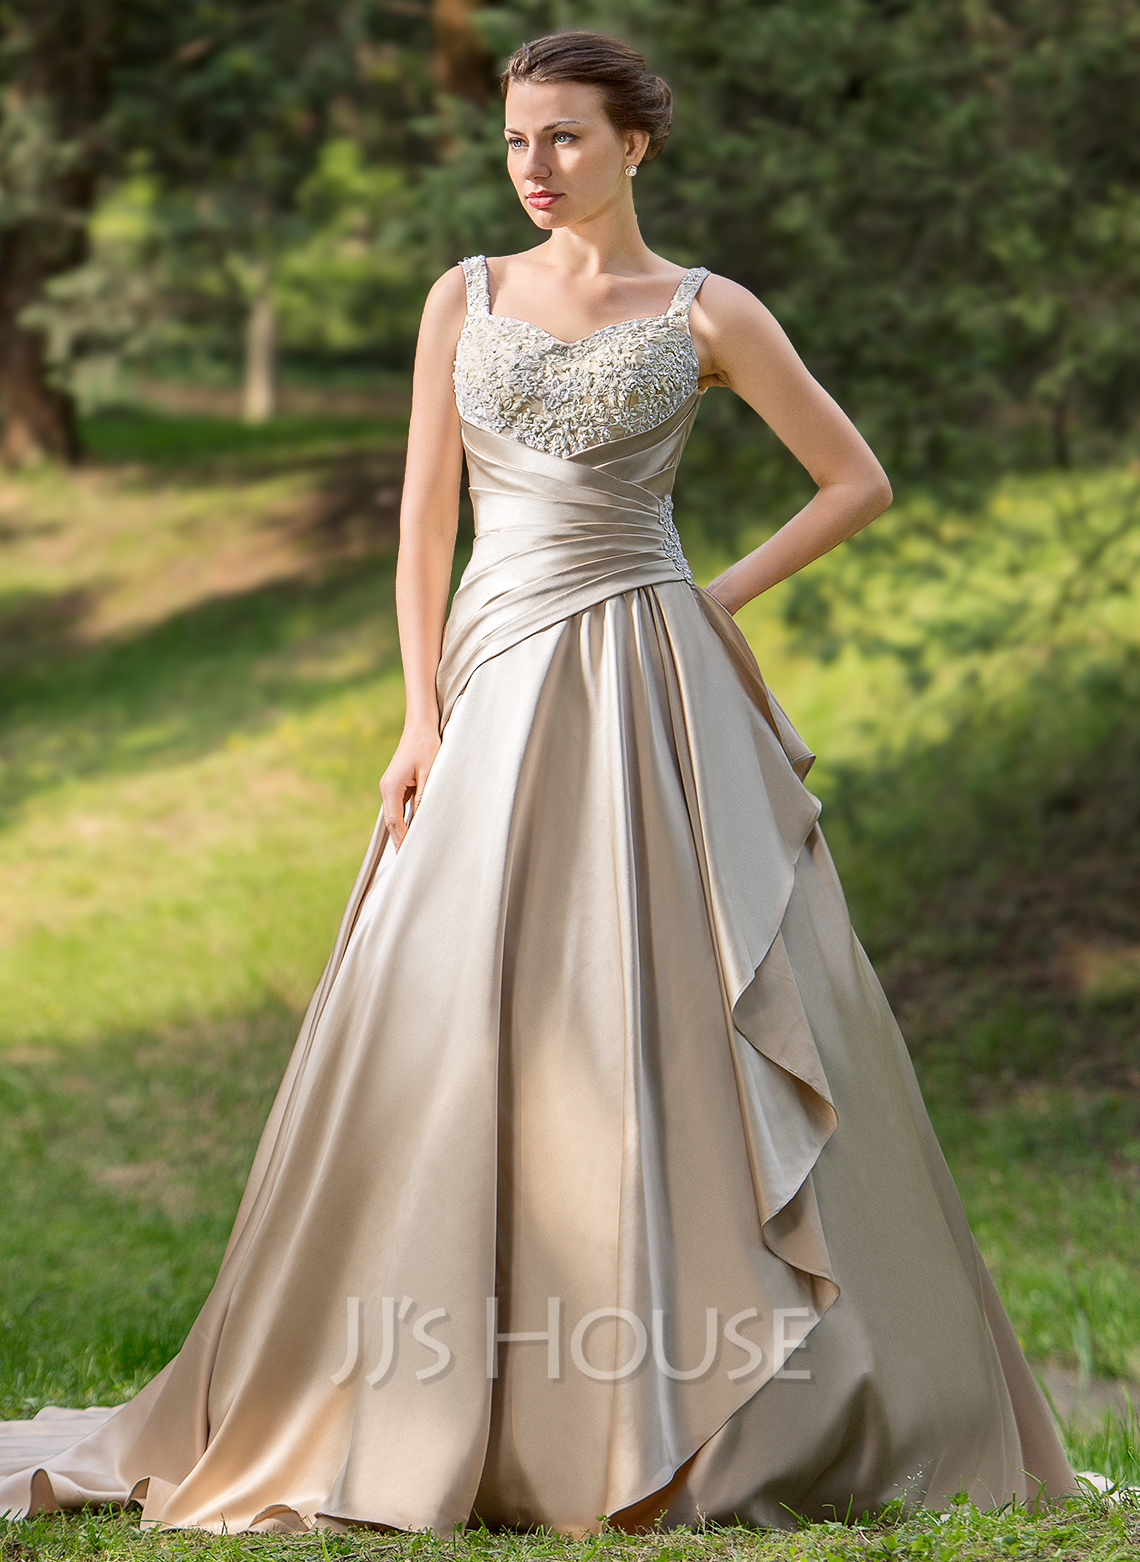 Ball Gown Sweetheart Court Train Satin Wedding Dress With Ruffle Beading Appliques Lace Cascading Ruffles g jjshouse wedding dress Home Wedding Dresses Loading zoom